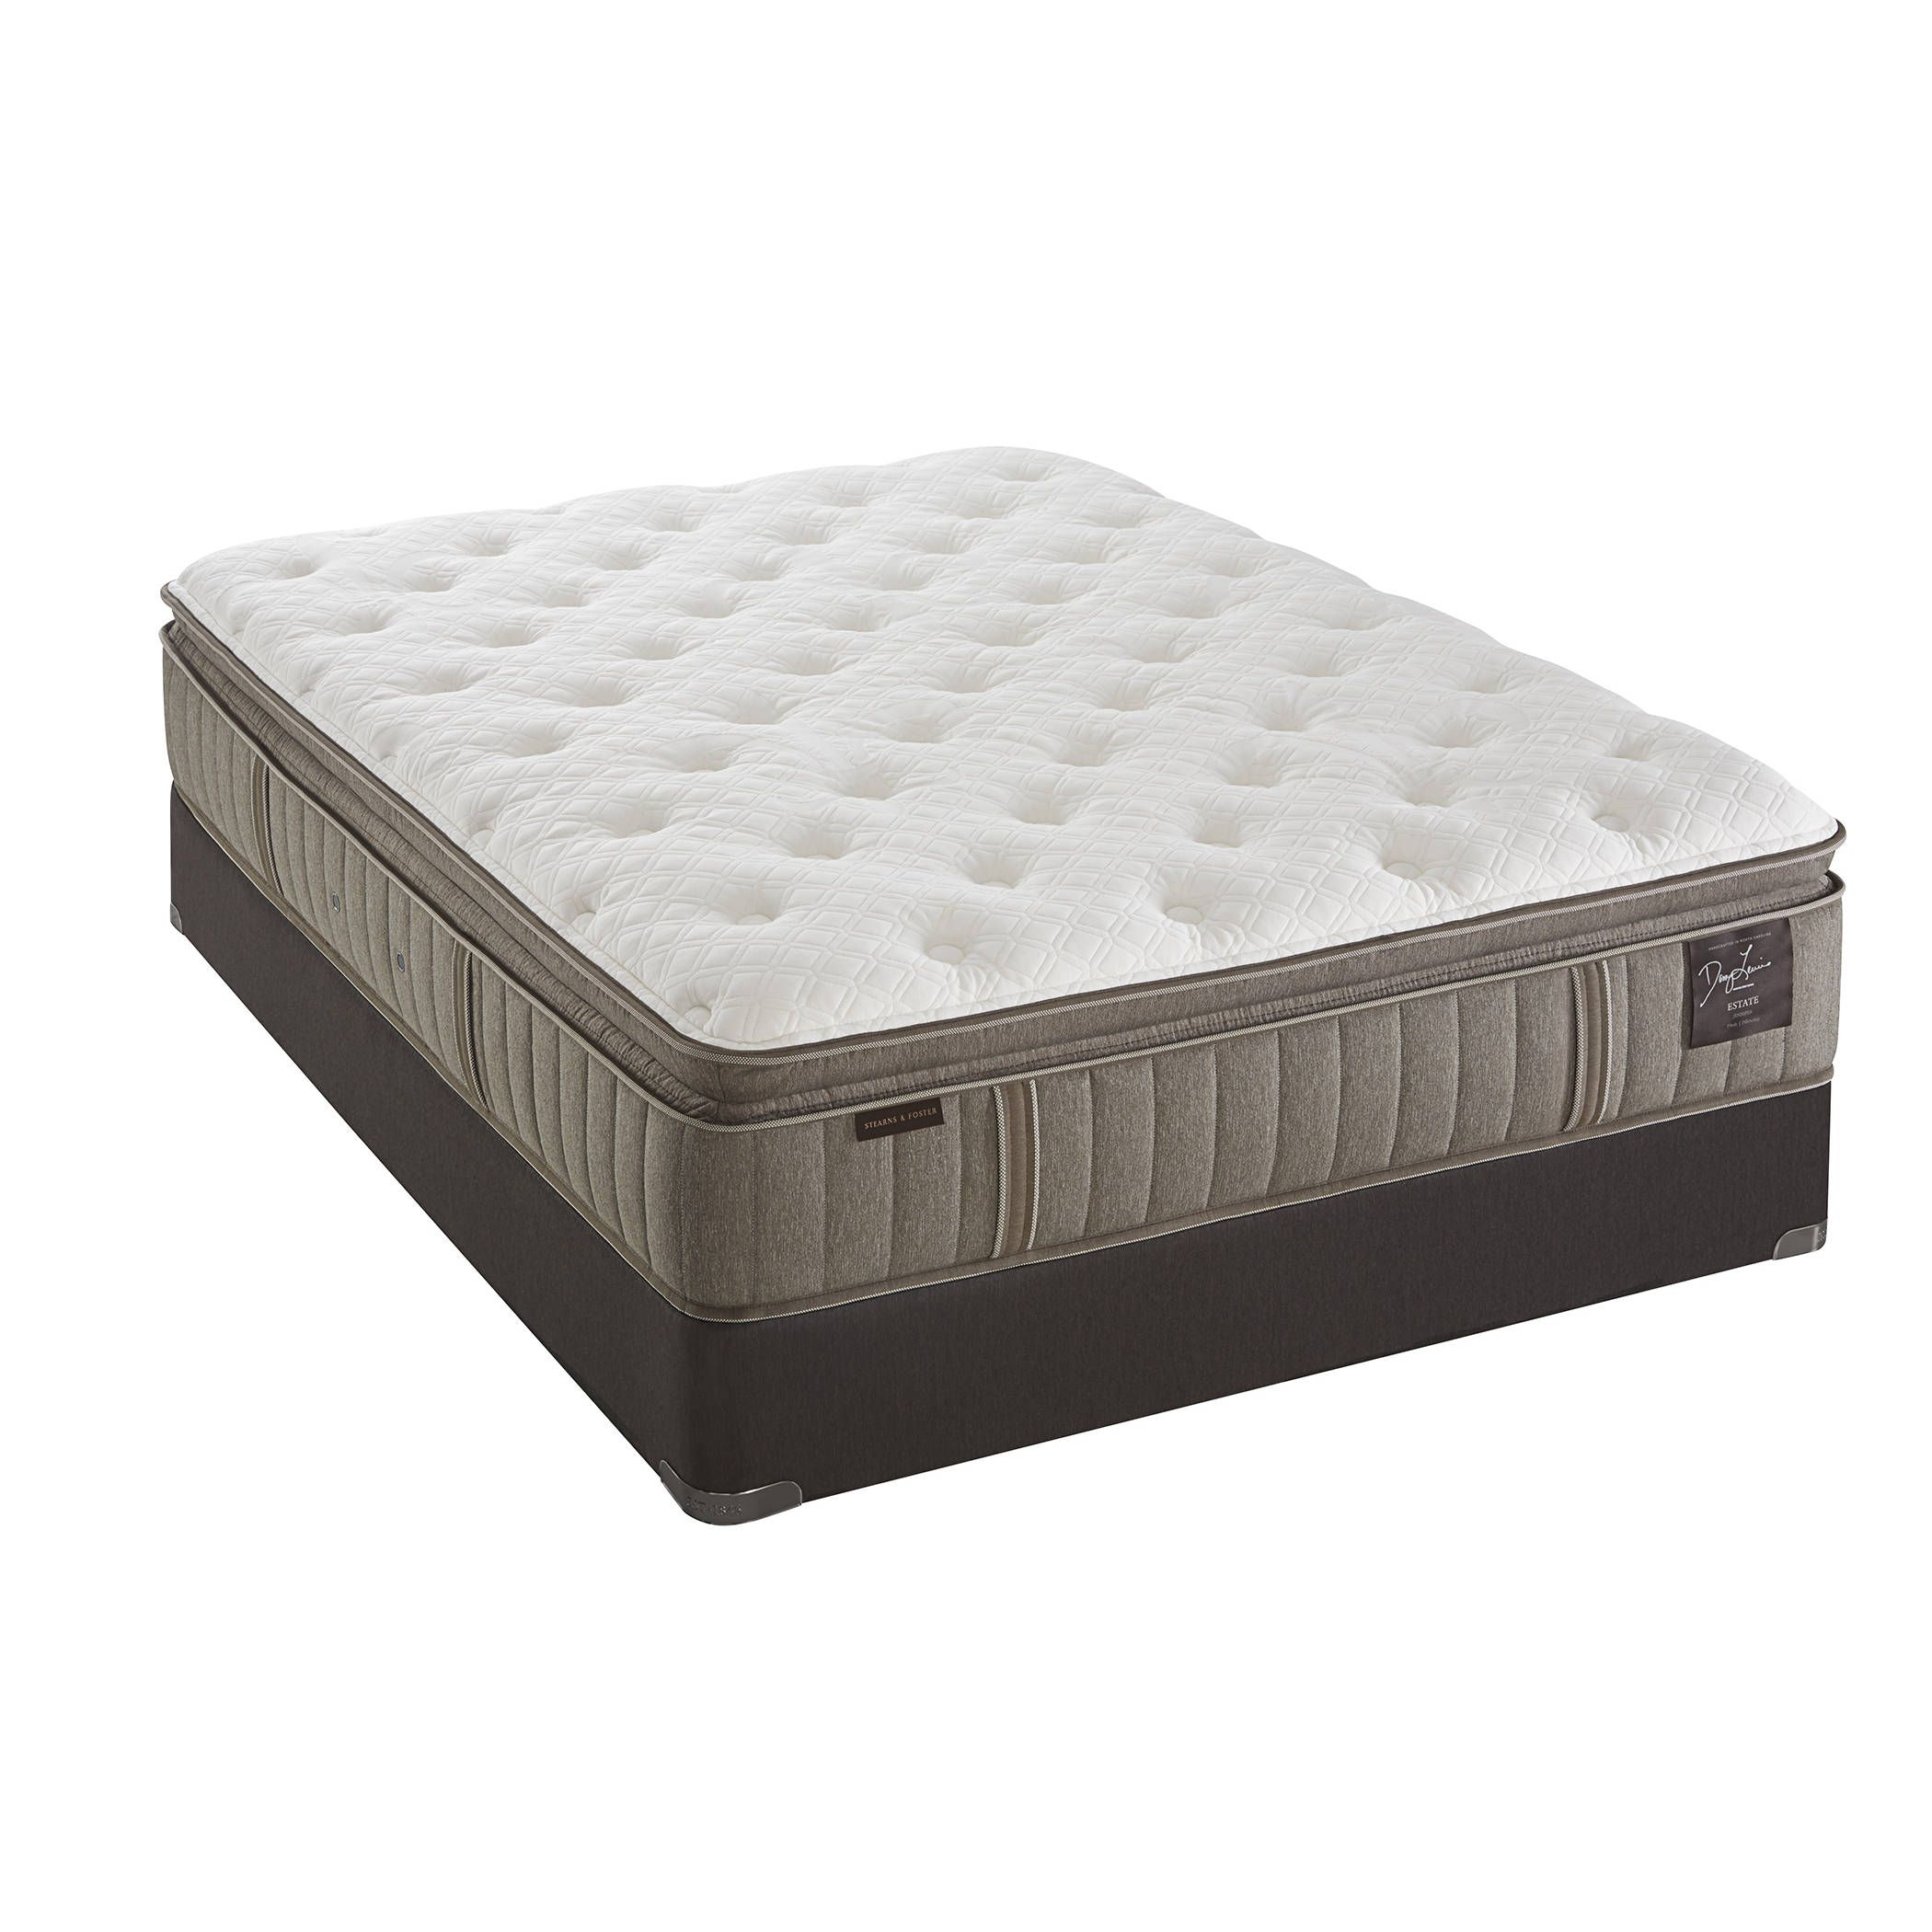 bailey jensen best 13 in latex memory foam mattress lf1333